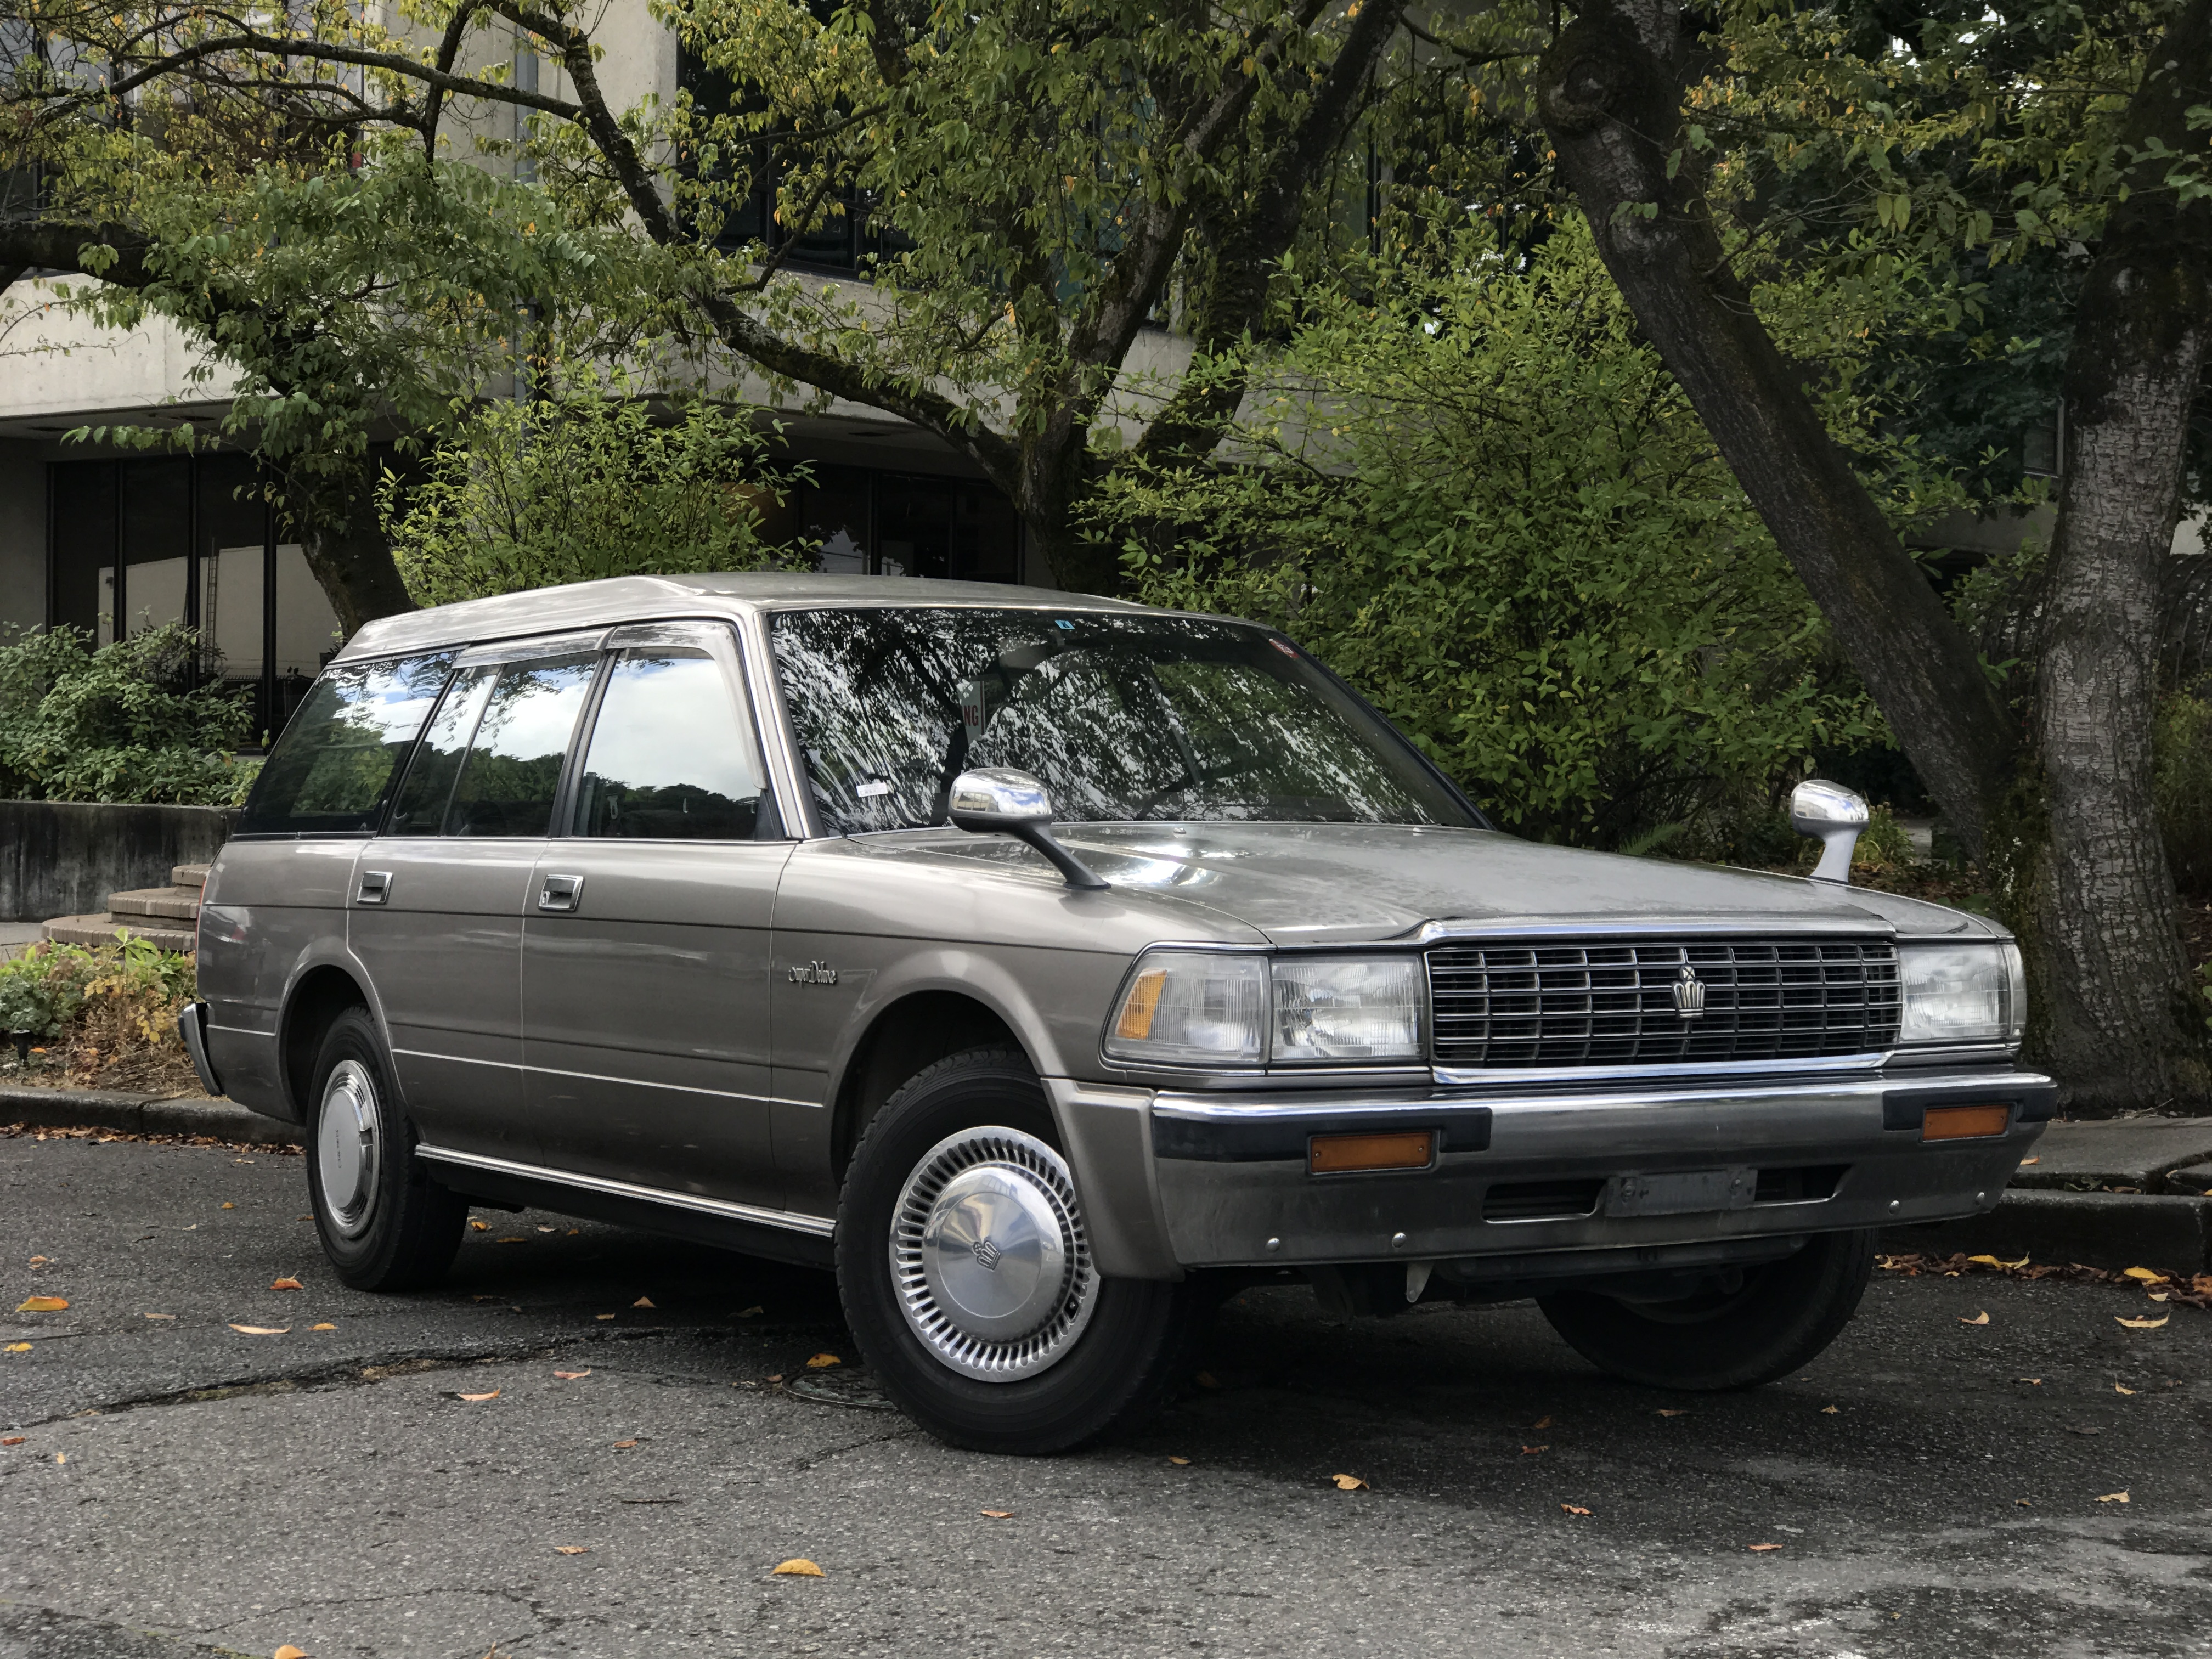 1990 toyota crown wagon 5 spd adamsgarage sodo moto. Black Bedroom Furniture Sets. Home Design Ideas